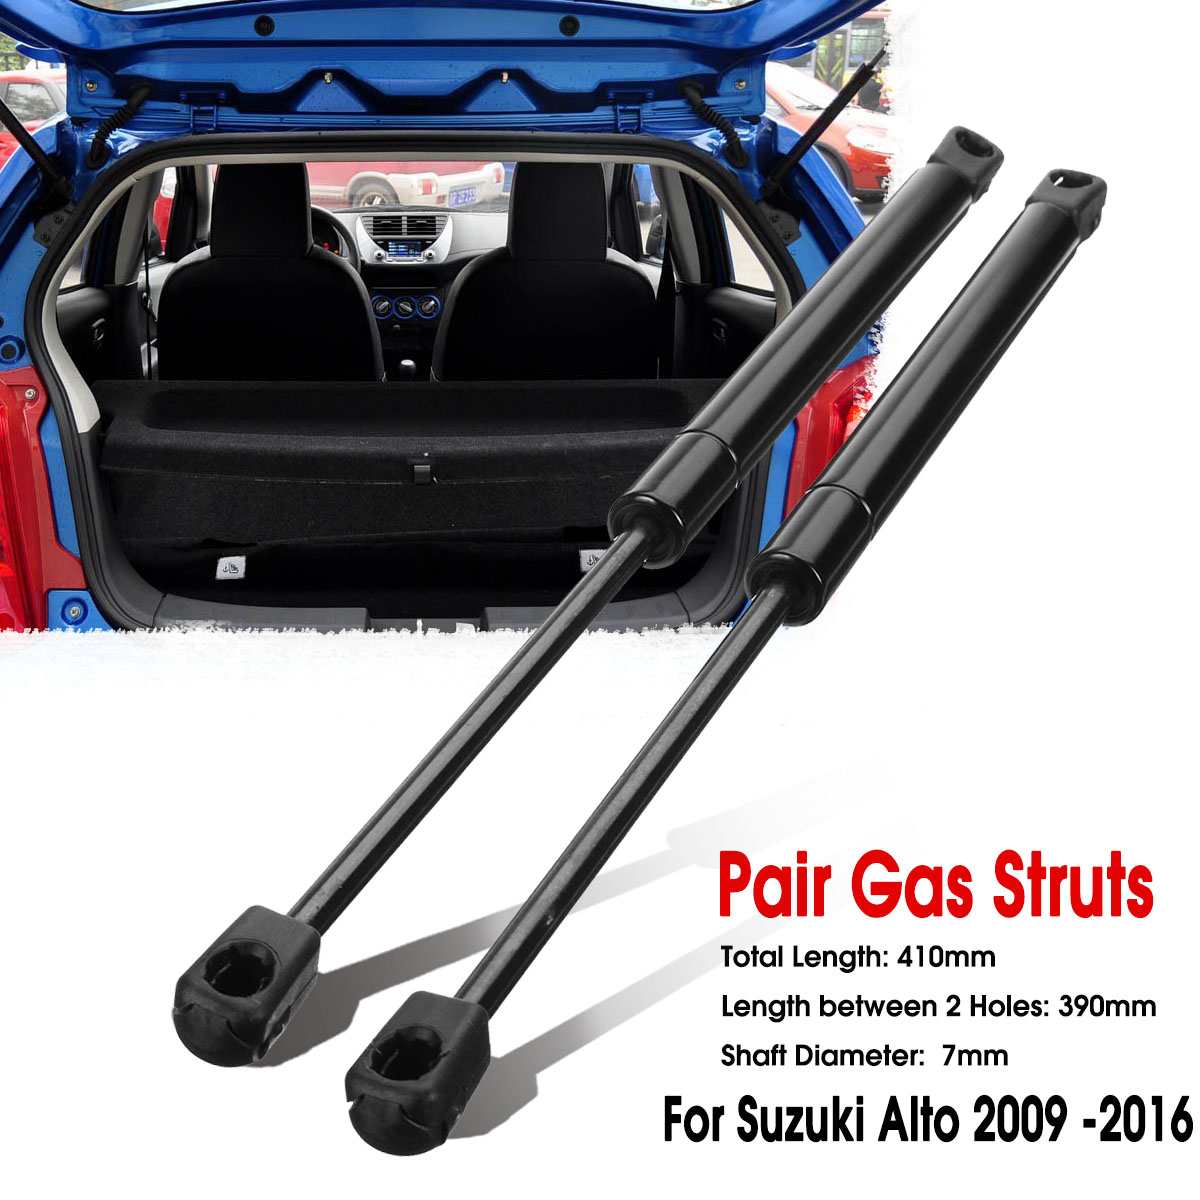 2pcs Car Rear Tailgate Boot Gas Lift Support Struts bar for Suzuki Alto HA25 HA35 2009 2010 2011 2012 2013 2014 2015 2016